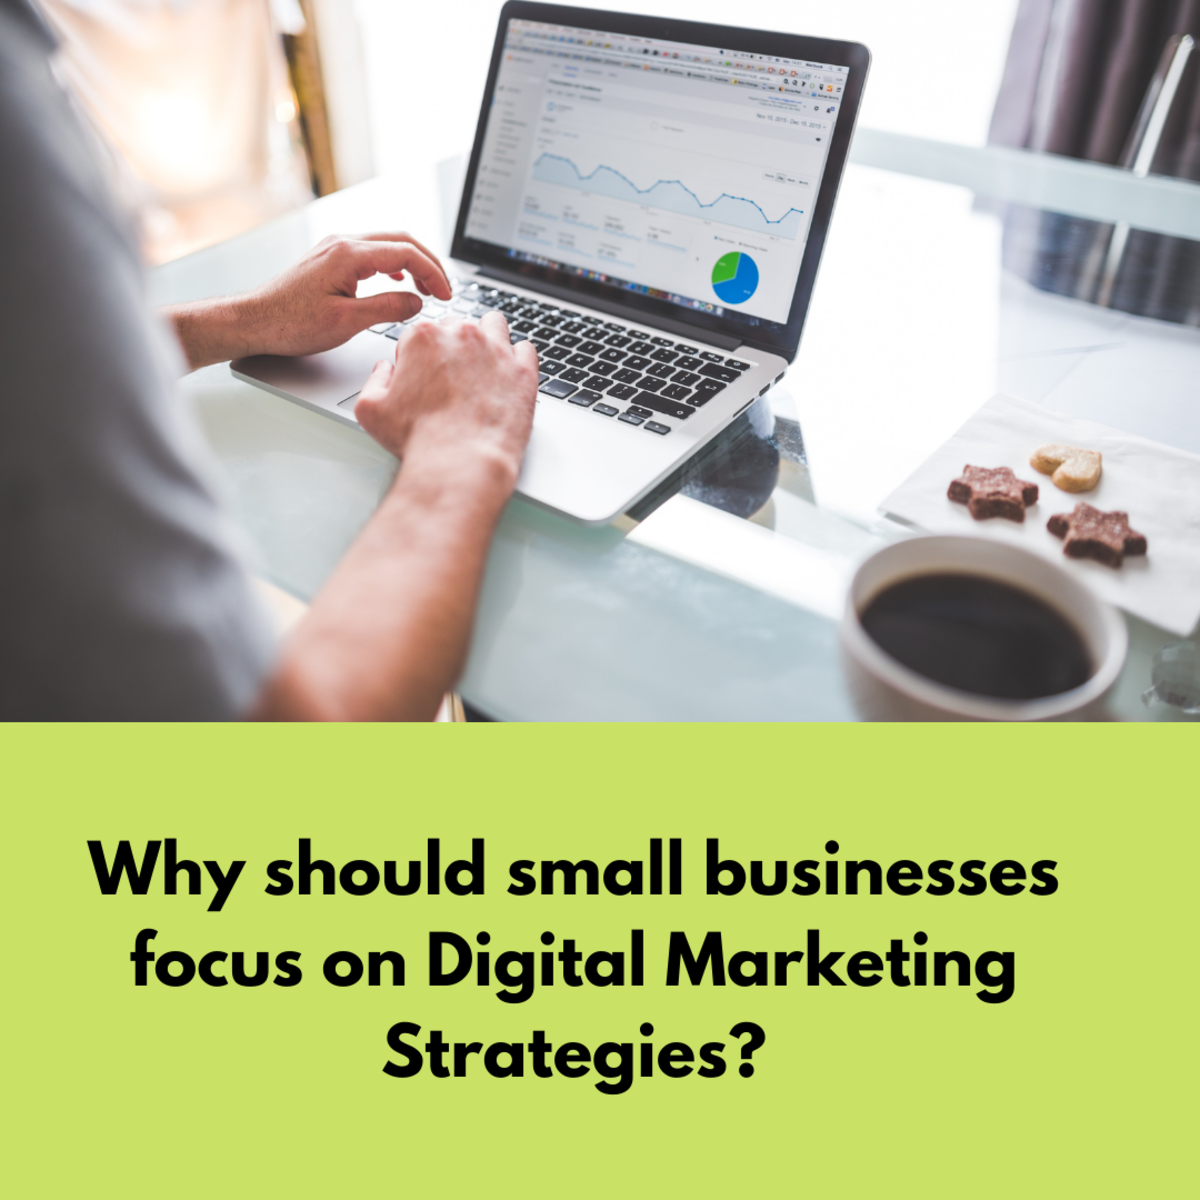 Why should small businesses focus on Digital Marketing Strategies?